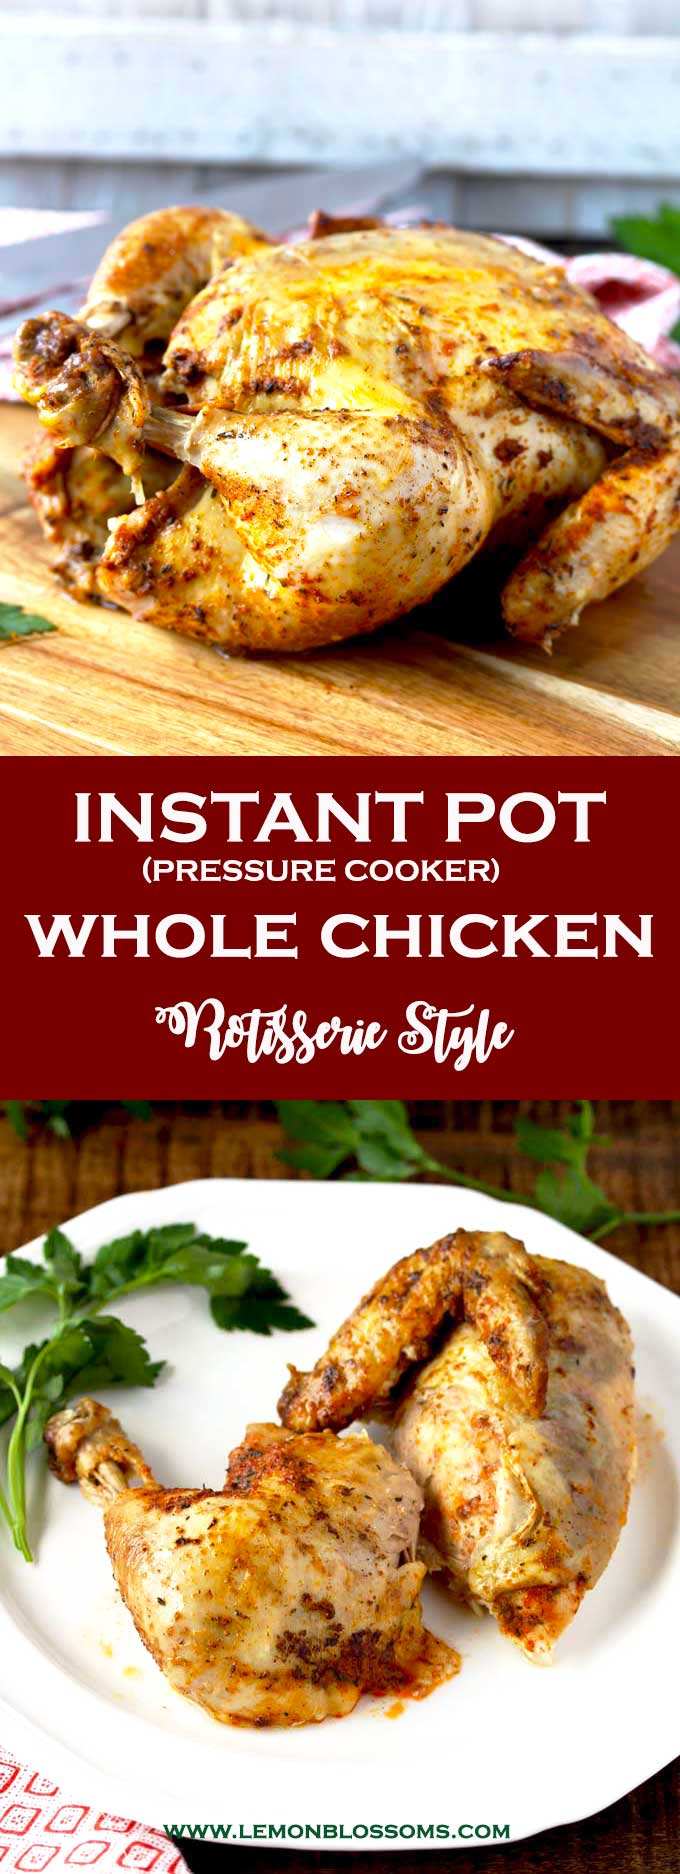 This Pressure Cooker (Instant Pot) Whole Chicken is easy, juicy, tender and cooks in less than 30 minutes! This rotisserie style instant pot whole chicken is delicious and a great and simple weeknight meal. #instantpot #recipes #keto #howtomake #glutenfree #chicken